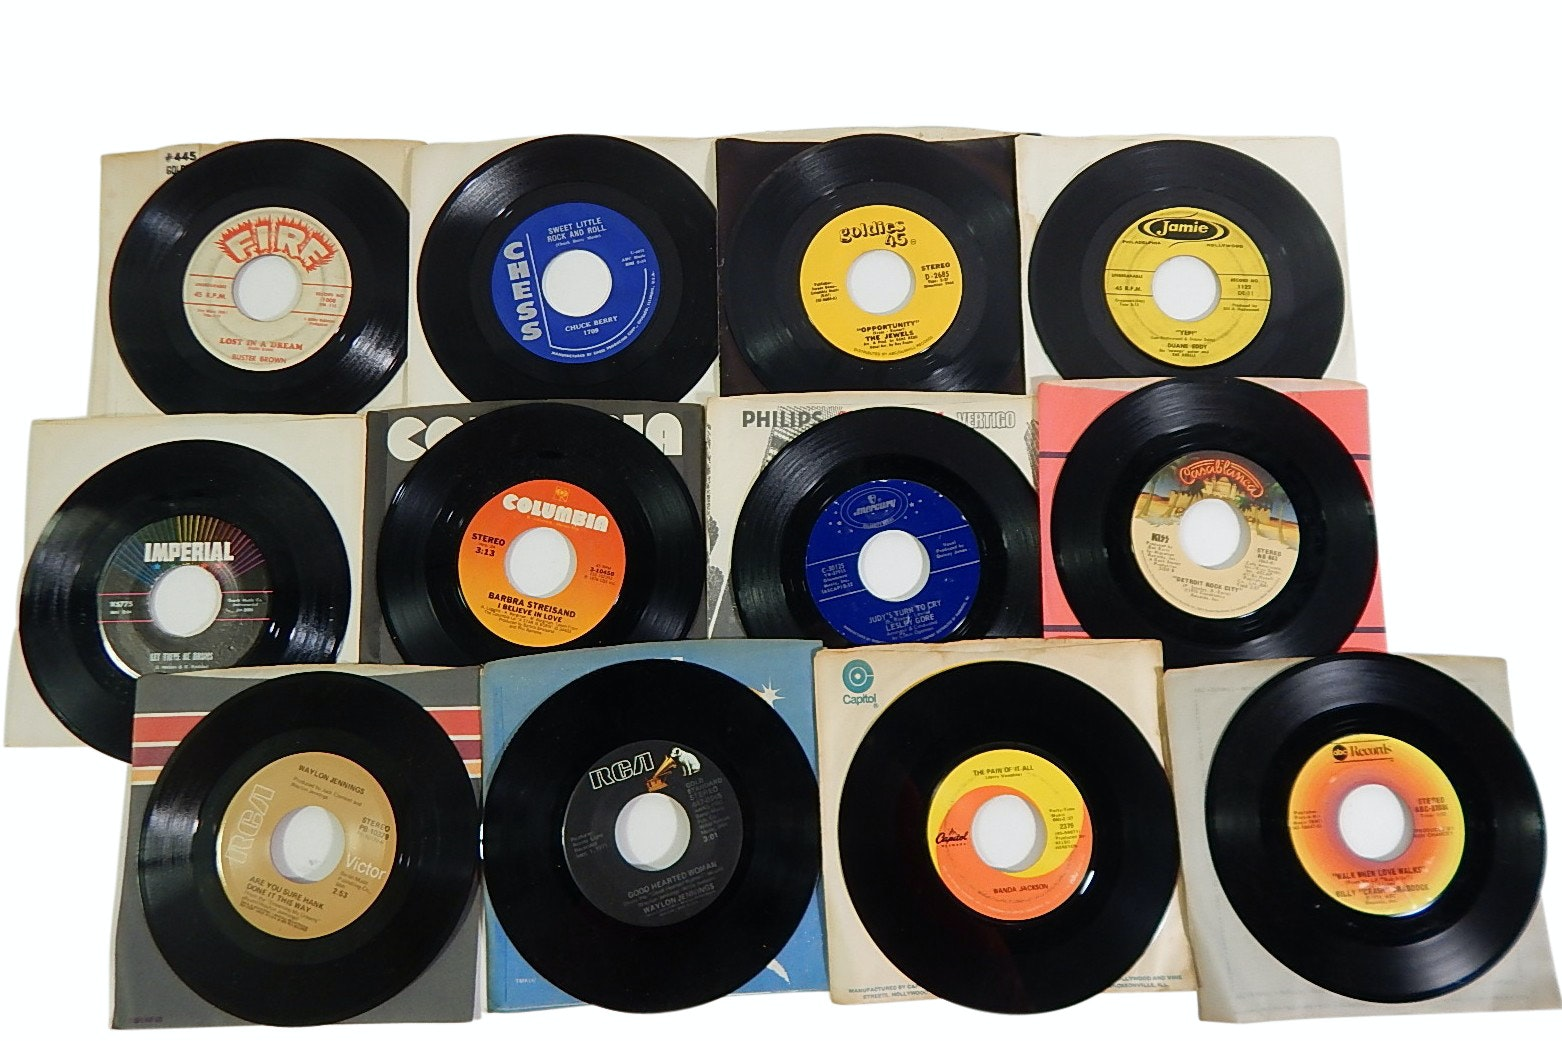 Collection of 1970s 45 RPM Record Albums with Country, Rock, Pop, and R&B